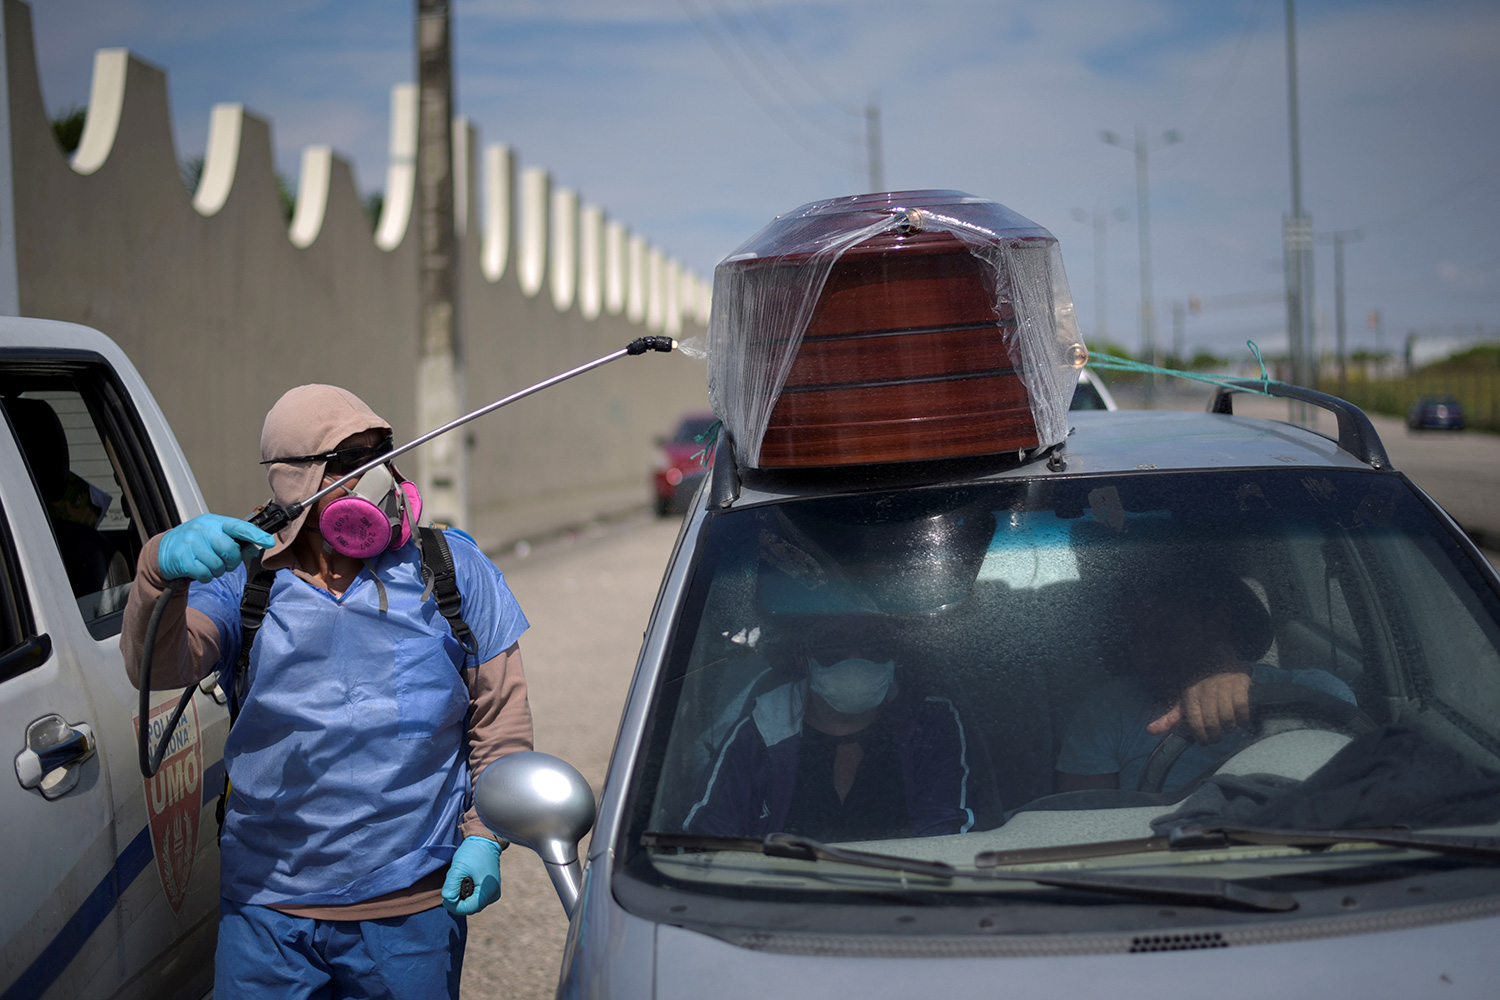 The photo shows a health worker in protective gear spraying a vehicle.